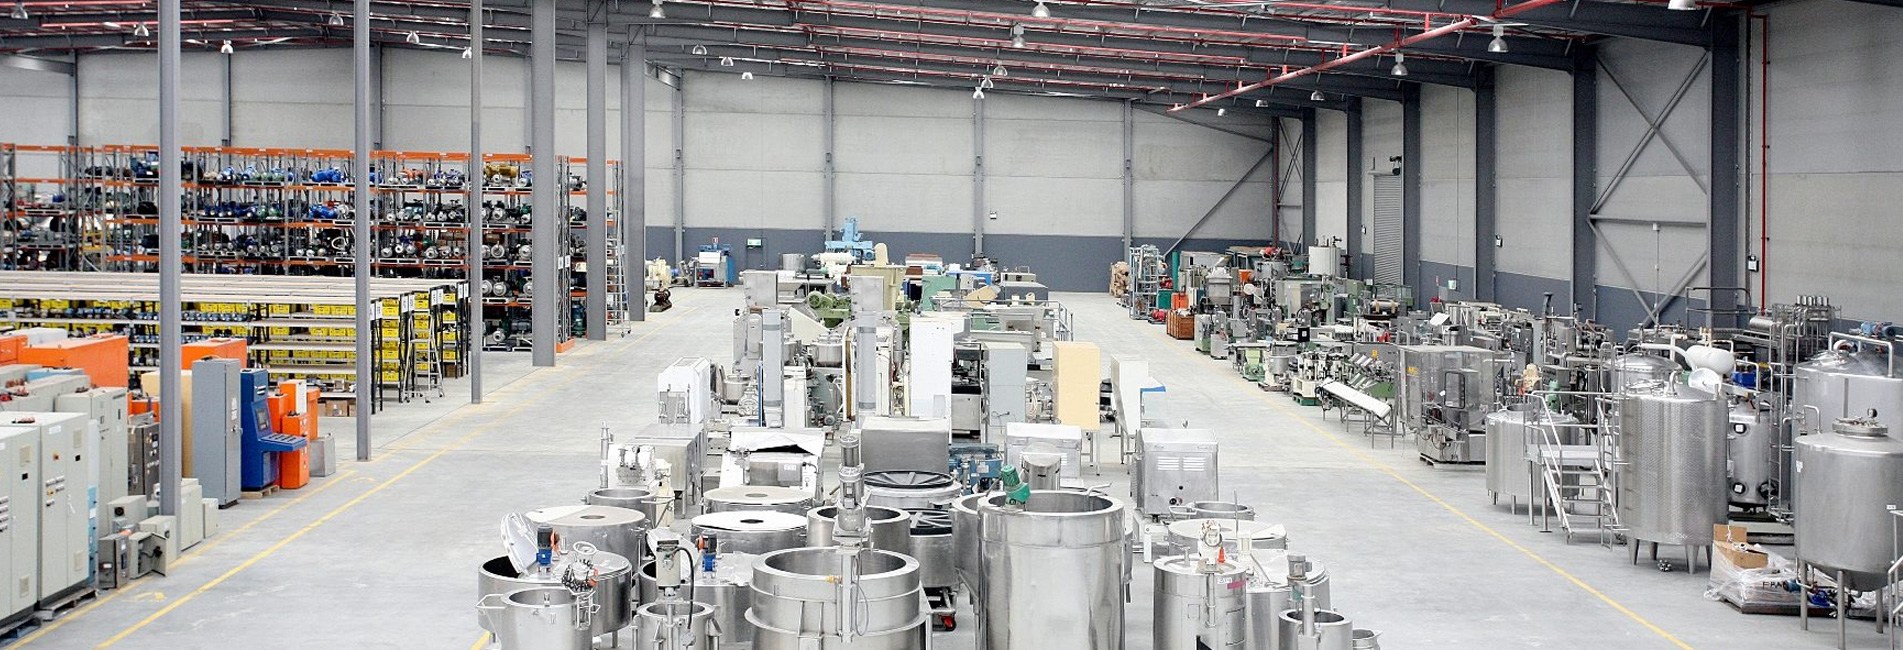 Machinery Wholesaler QLD, Process Machinery Online, Used Process Equipment Melbourne, New Process Equipment Sydney